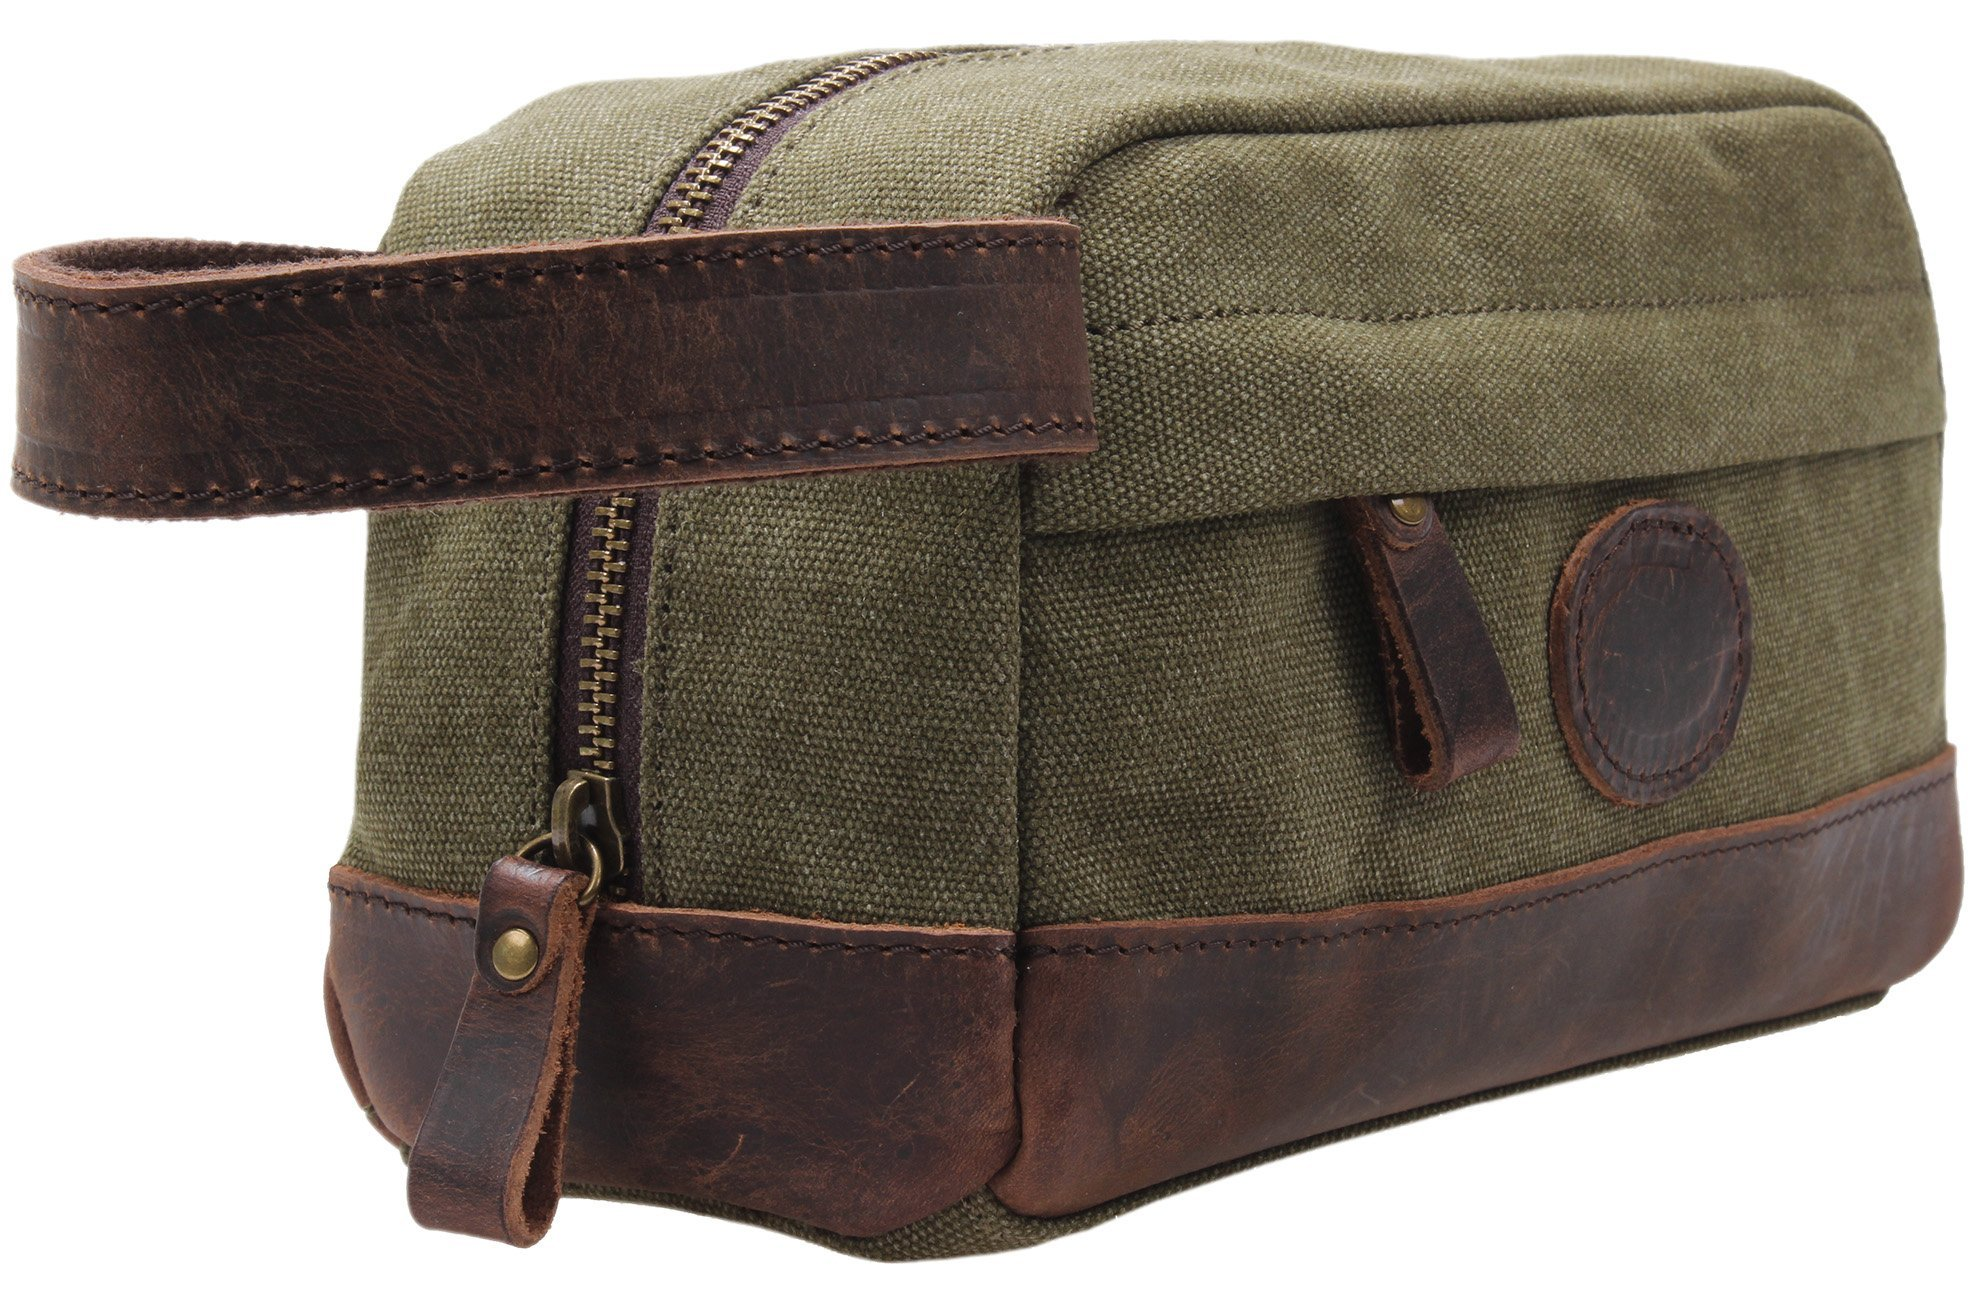 0138c099d93d My style garment MSG Vintage Leather Canvas Travel Toiletry Bag Shaving Dopp  Kit  A001